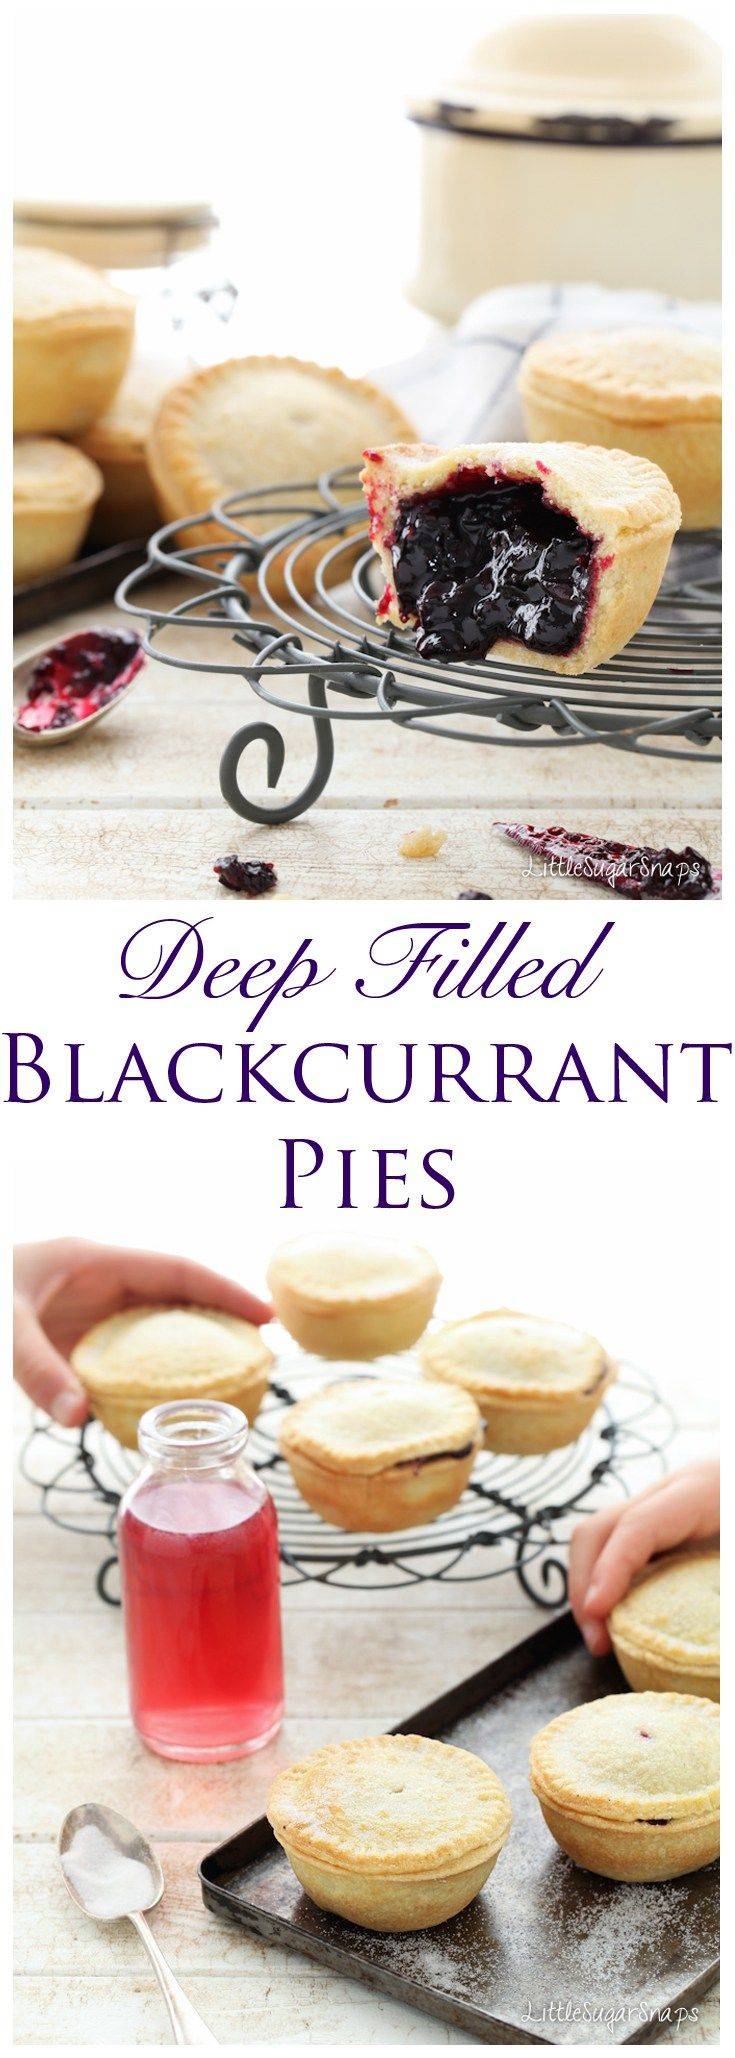 Deep Filled Blackcurrant Pies are the perfect marriage of sweet, tart jammy blackcurrant pie filling generously piled into crisp, golden homemade pastry. Eat them on their own – warm or cold – or elevate them into dessert status by serving with cream, custard or ice cream. These pies are sweet comfort food at their best.